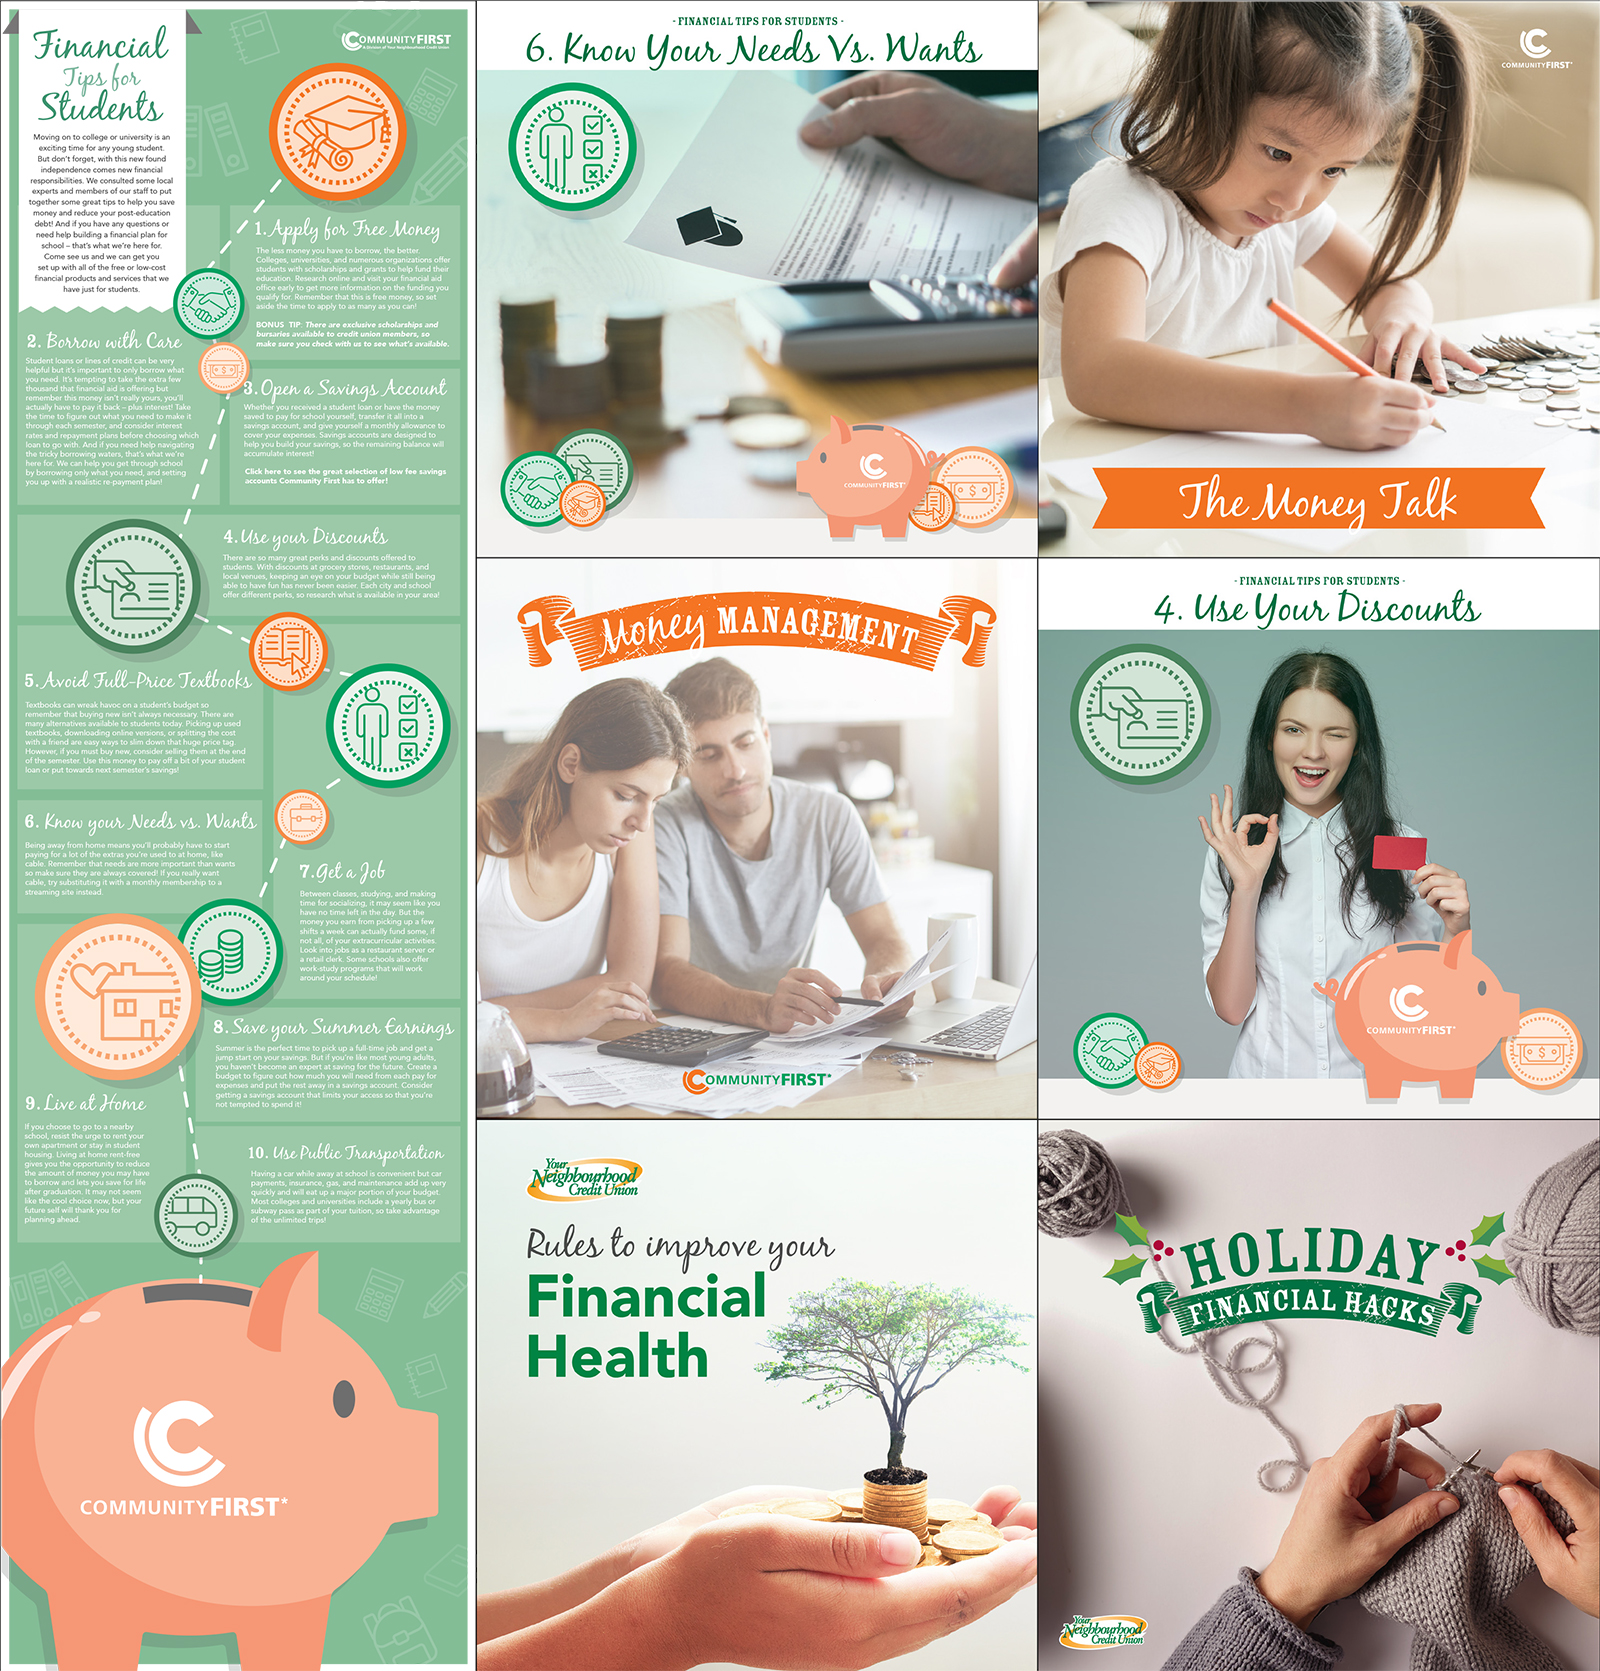 Collage of images showing a calculator and some papers, a little girl with coins in front of her holding a pencil, a young couple going over their budget, a young woman making the ok sign with her hand with a piggy bank, a small tree growing from a pile of coins in someones hands, a pair of hands knitting from two balls of yarn.